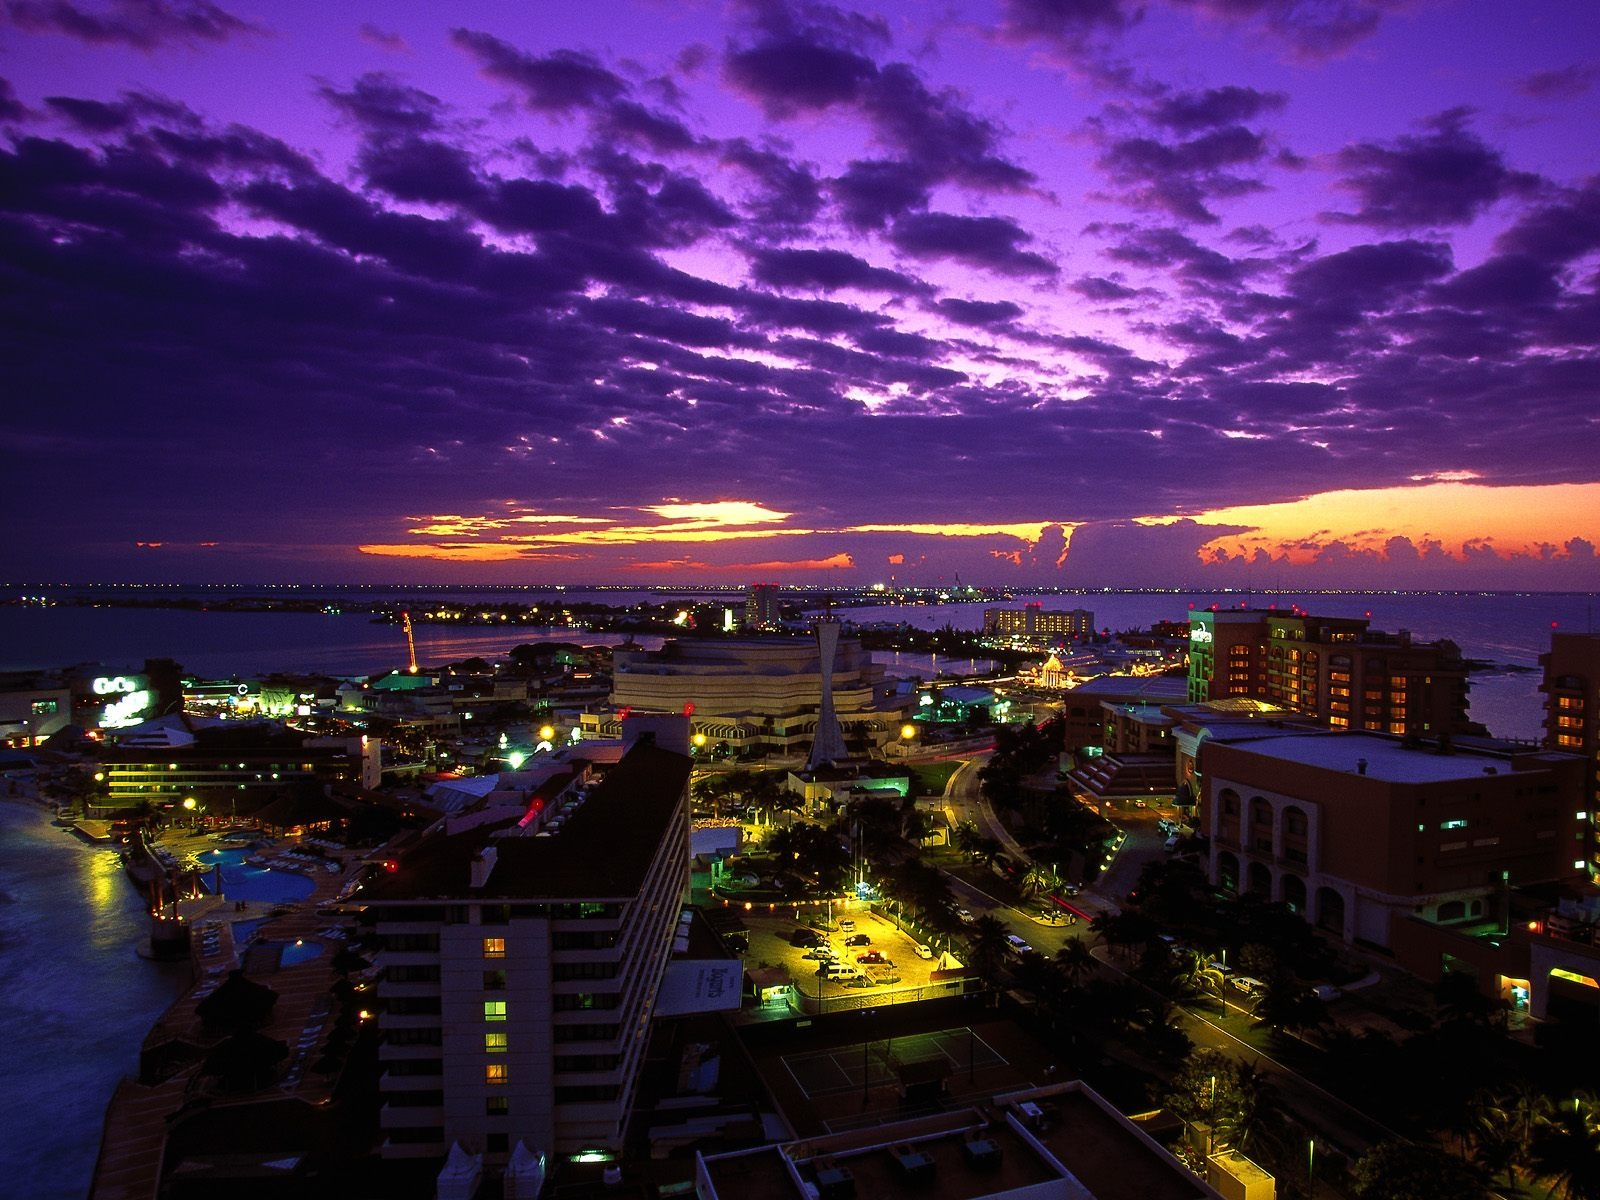 Cancun at Twilight, Mexico